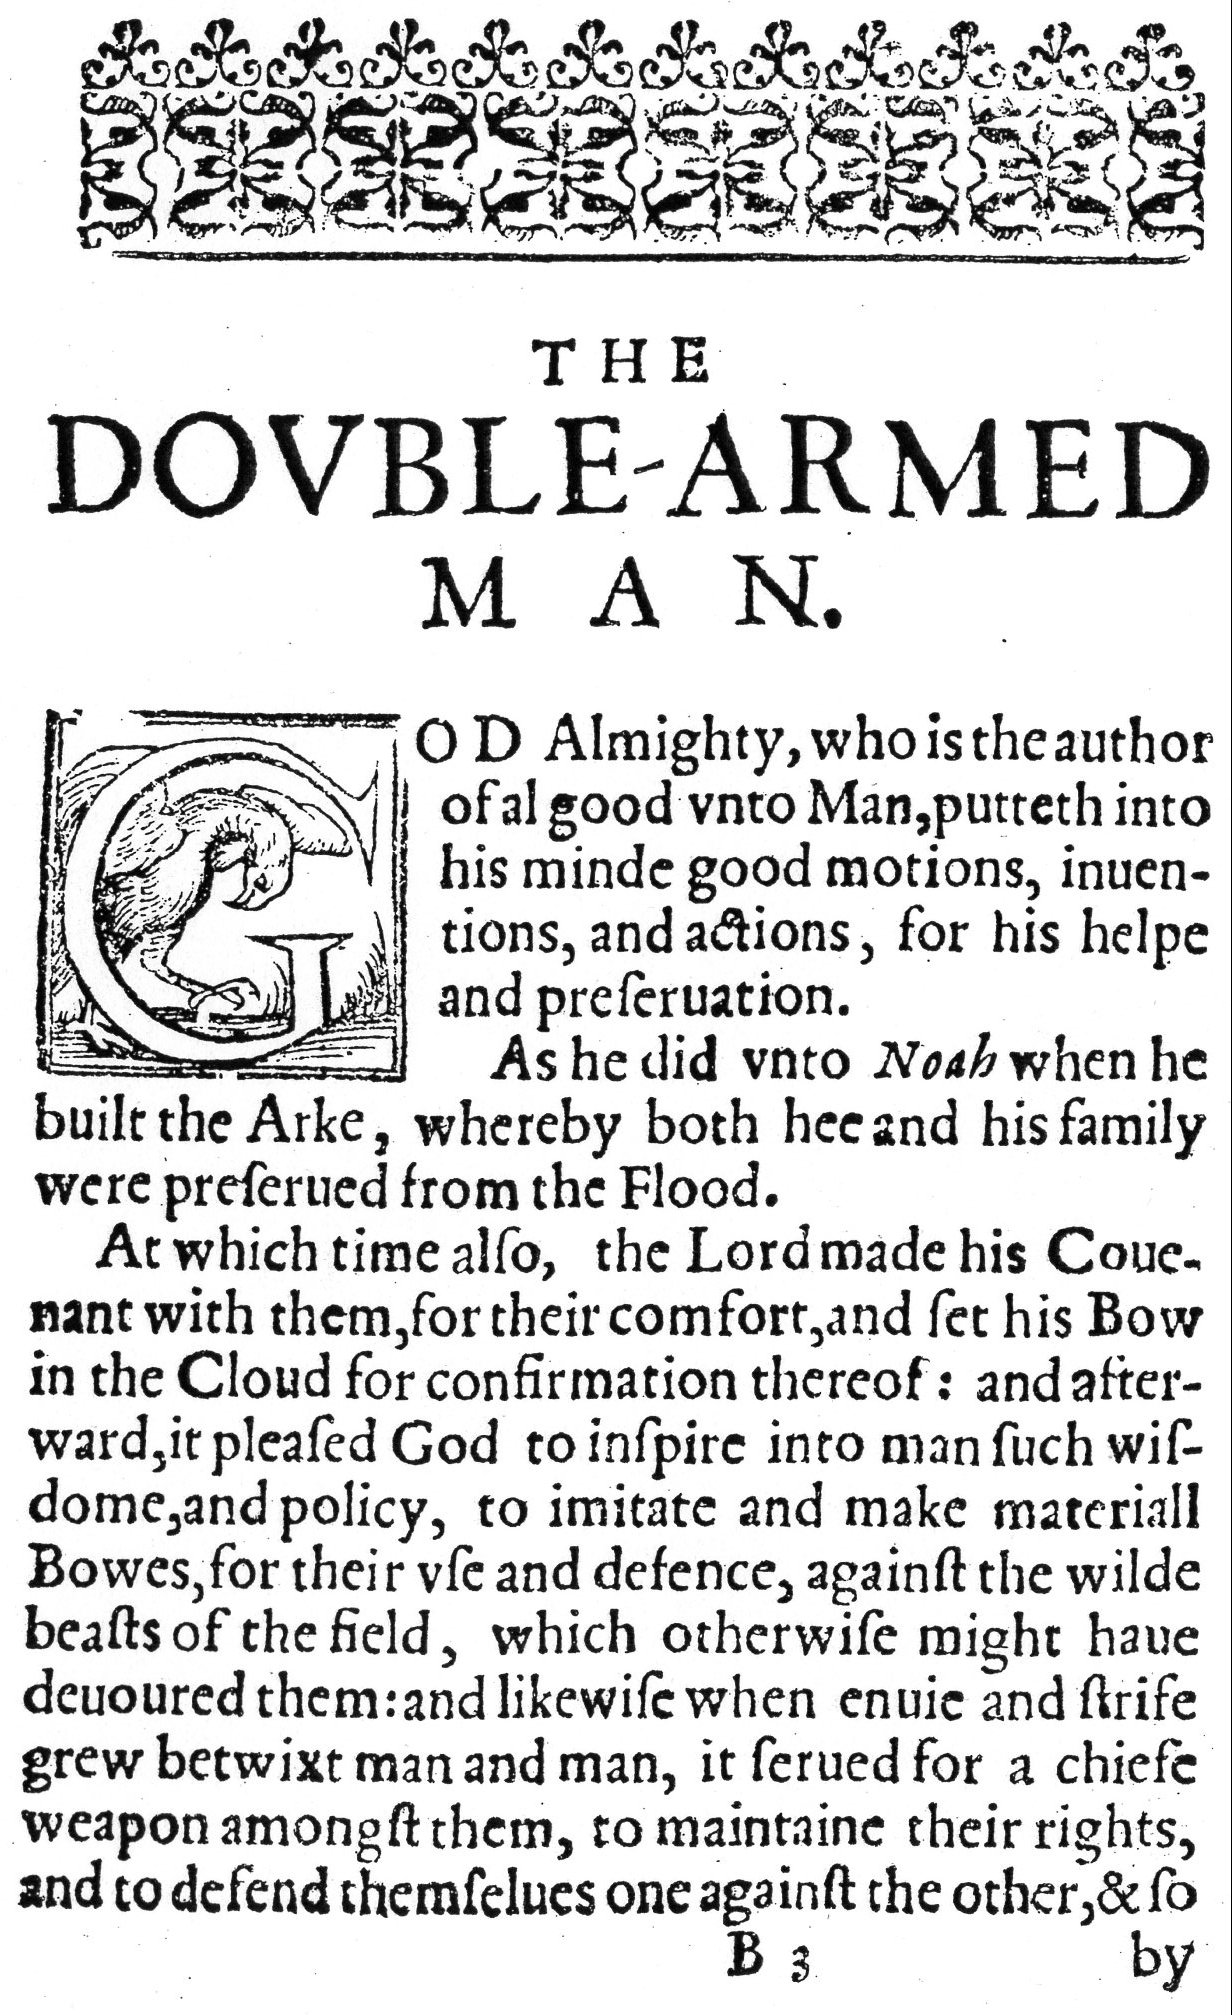 The Double-Armed Man, by the new Invention: briefly shewing some famous Exploits atchieved by our Brittish Bowmen: with severall Portraitures proper for the Pike and Bow. 1